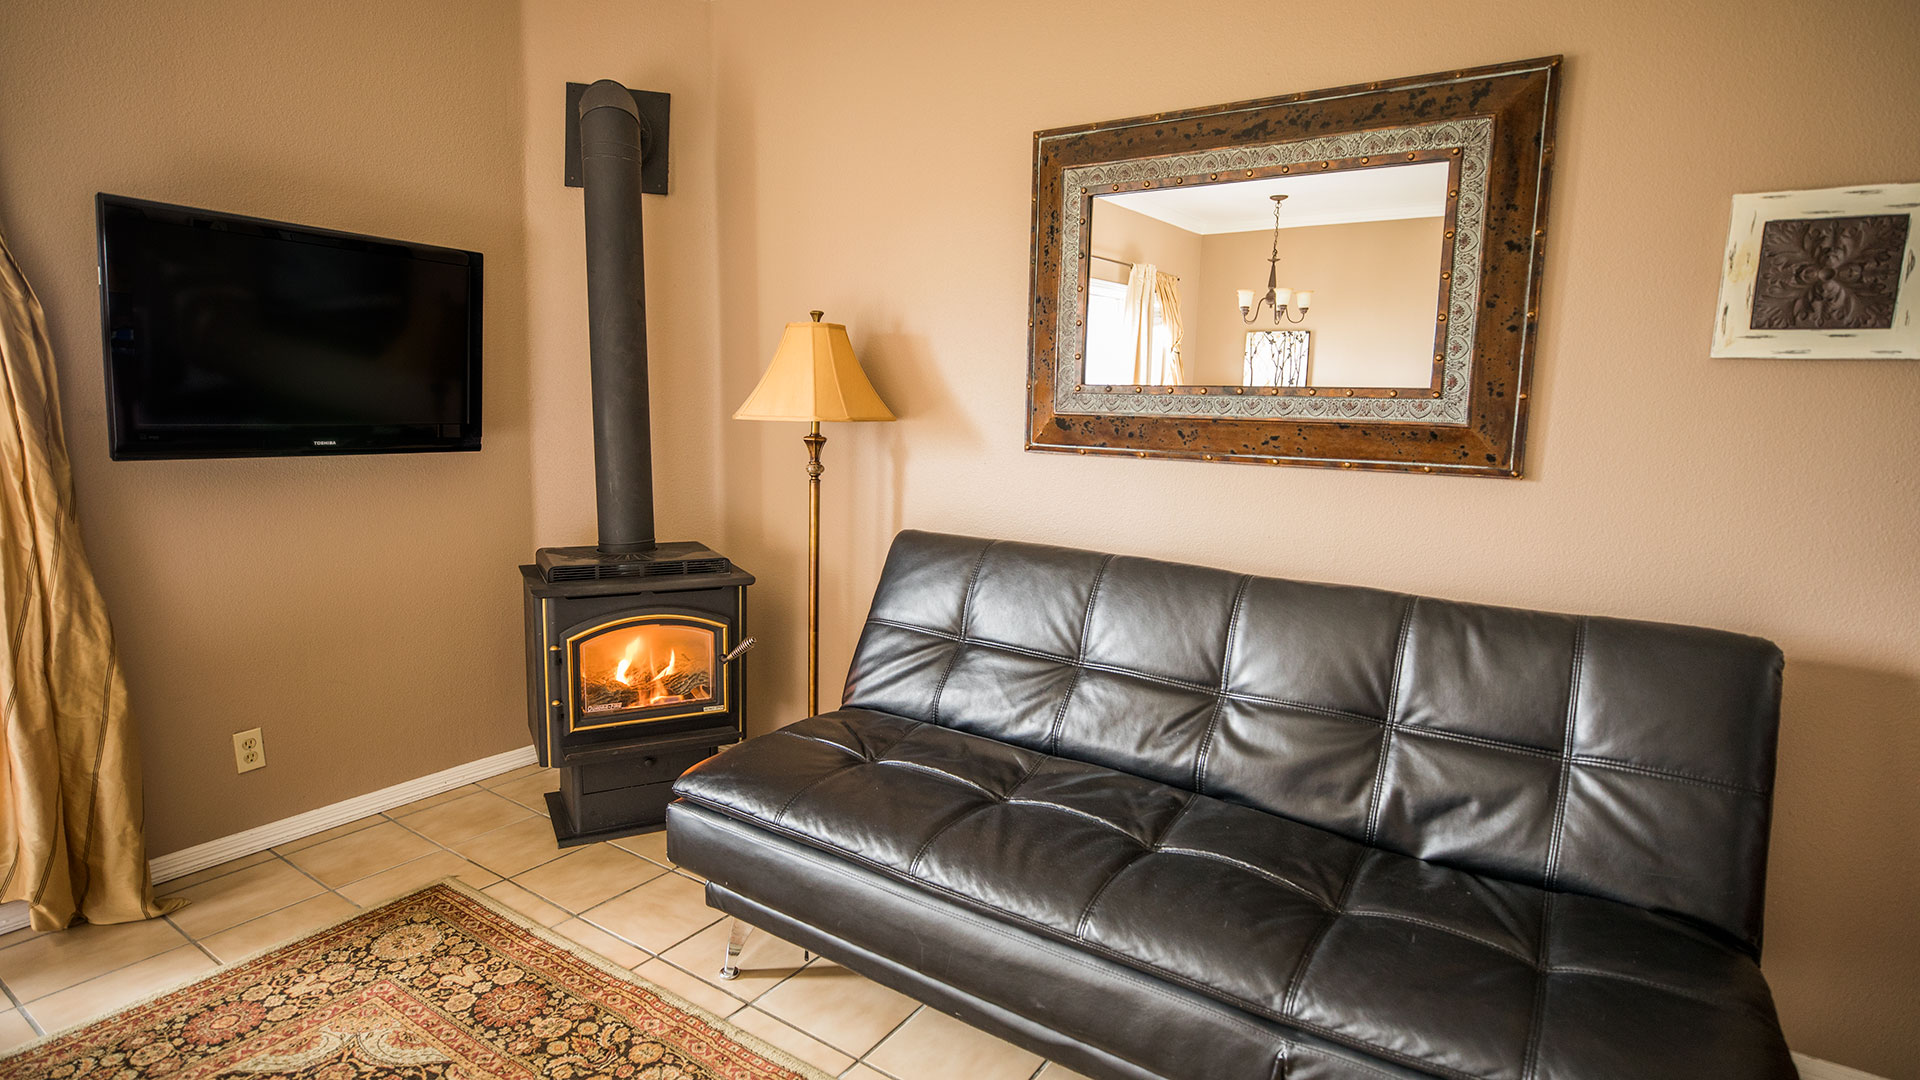 Flat Rock Sitting Area And Gas Stove